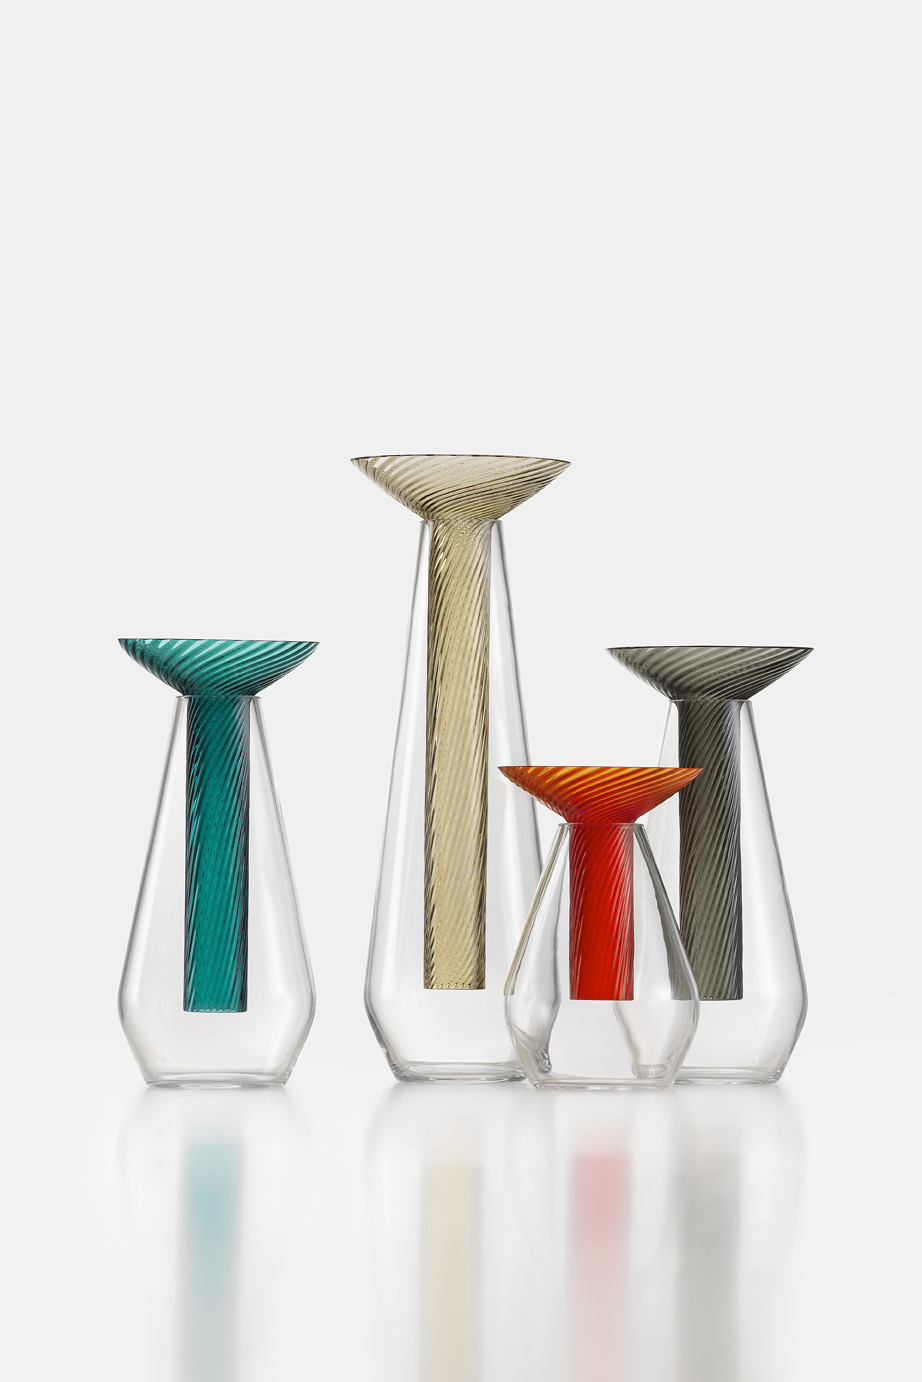 Calici Vases - for Salviati